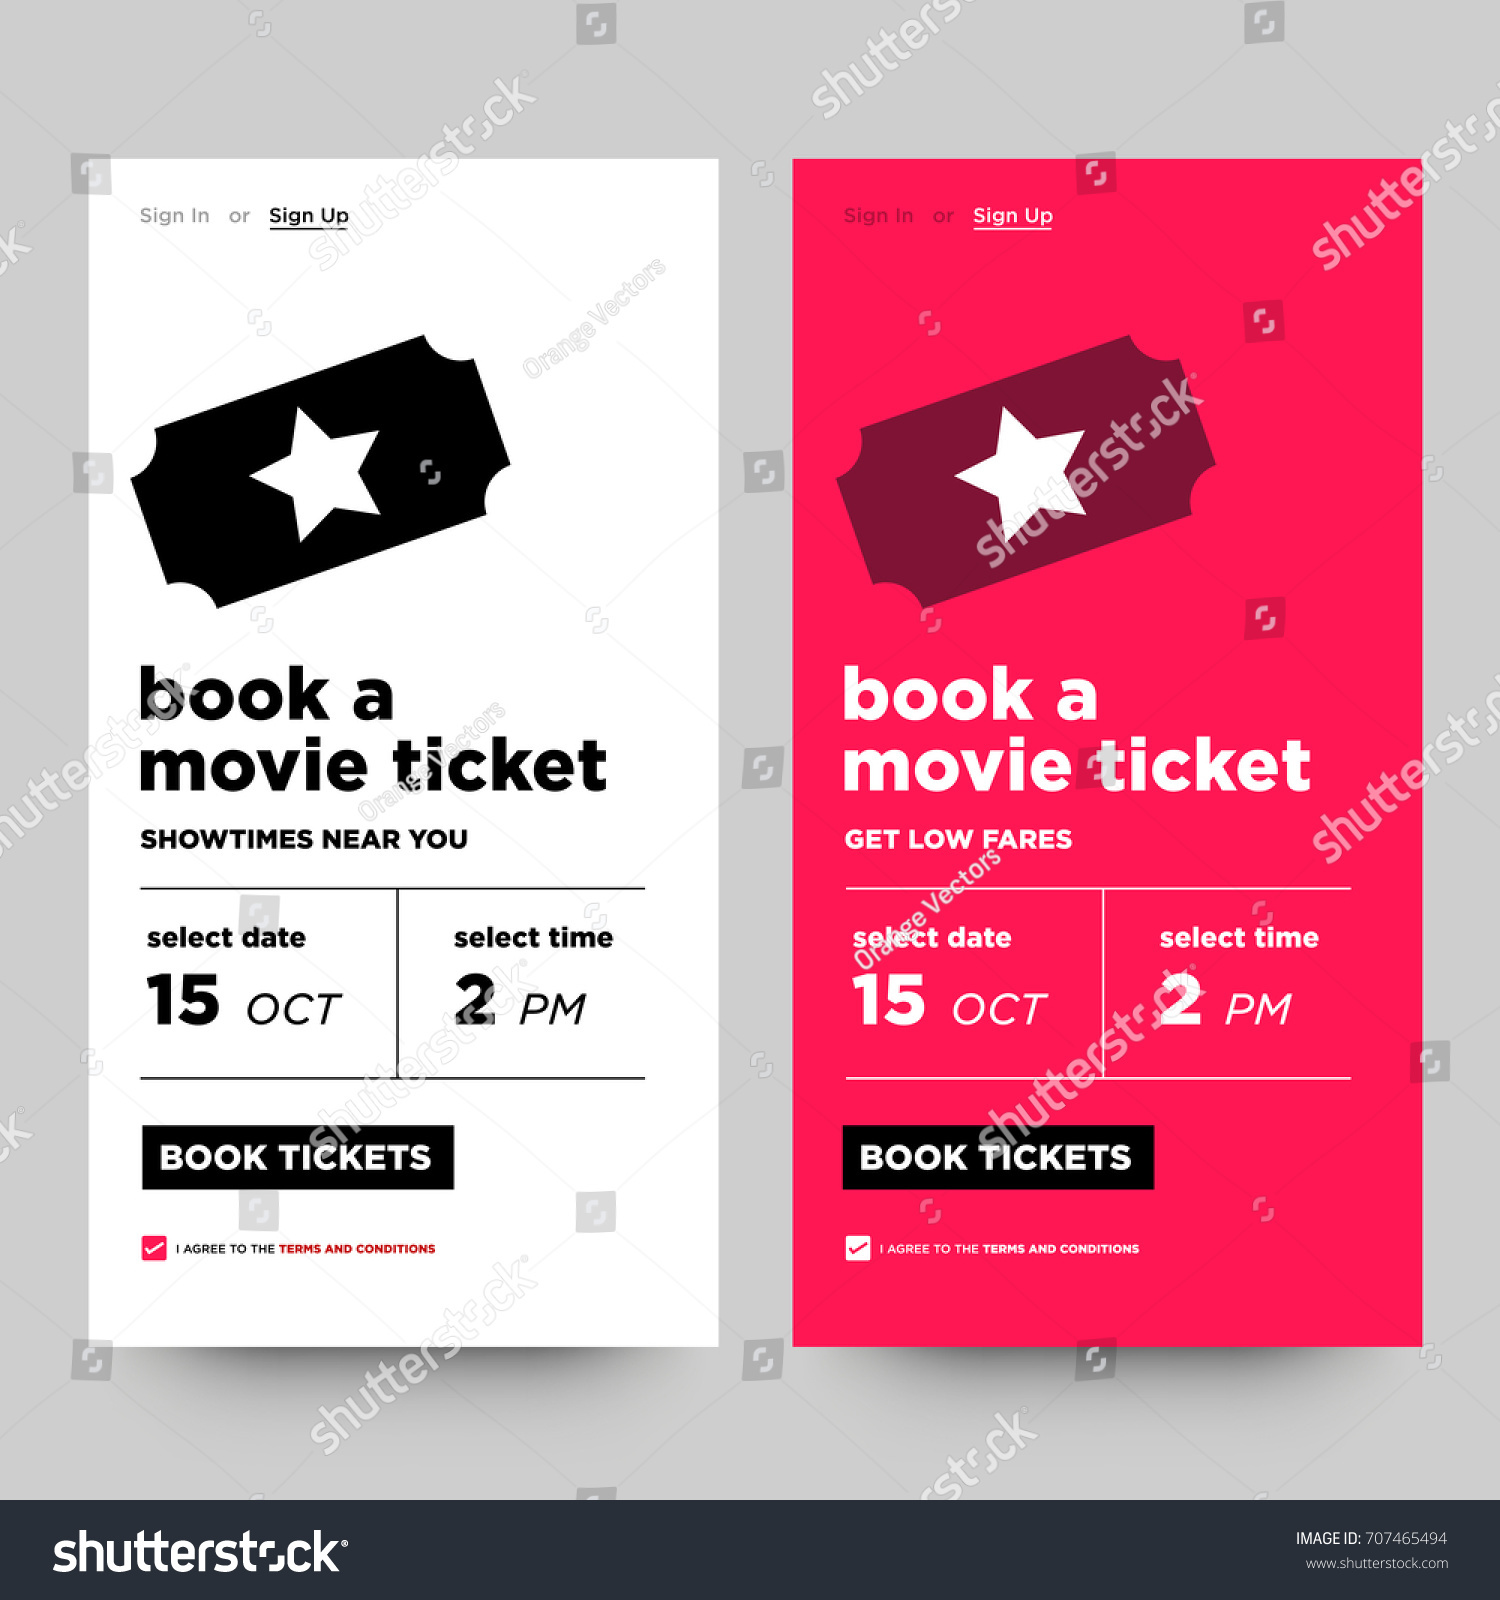 How to book a movie ticket